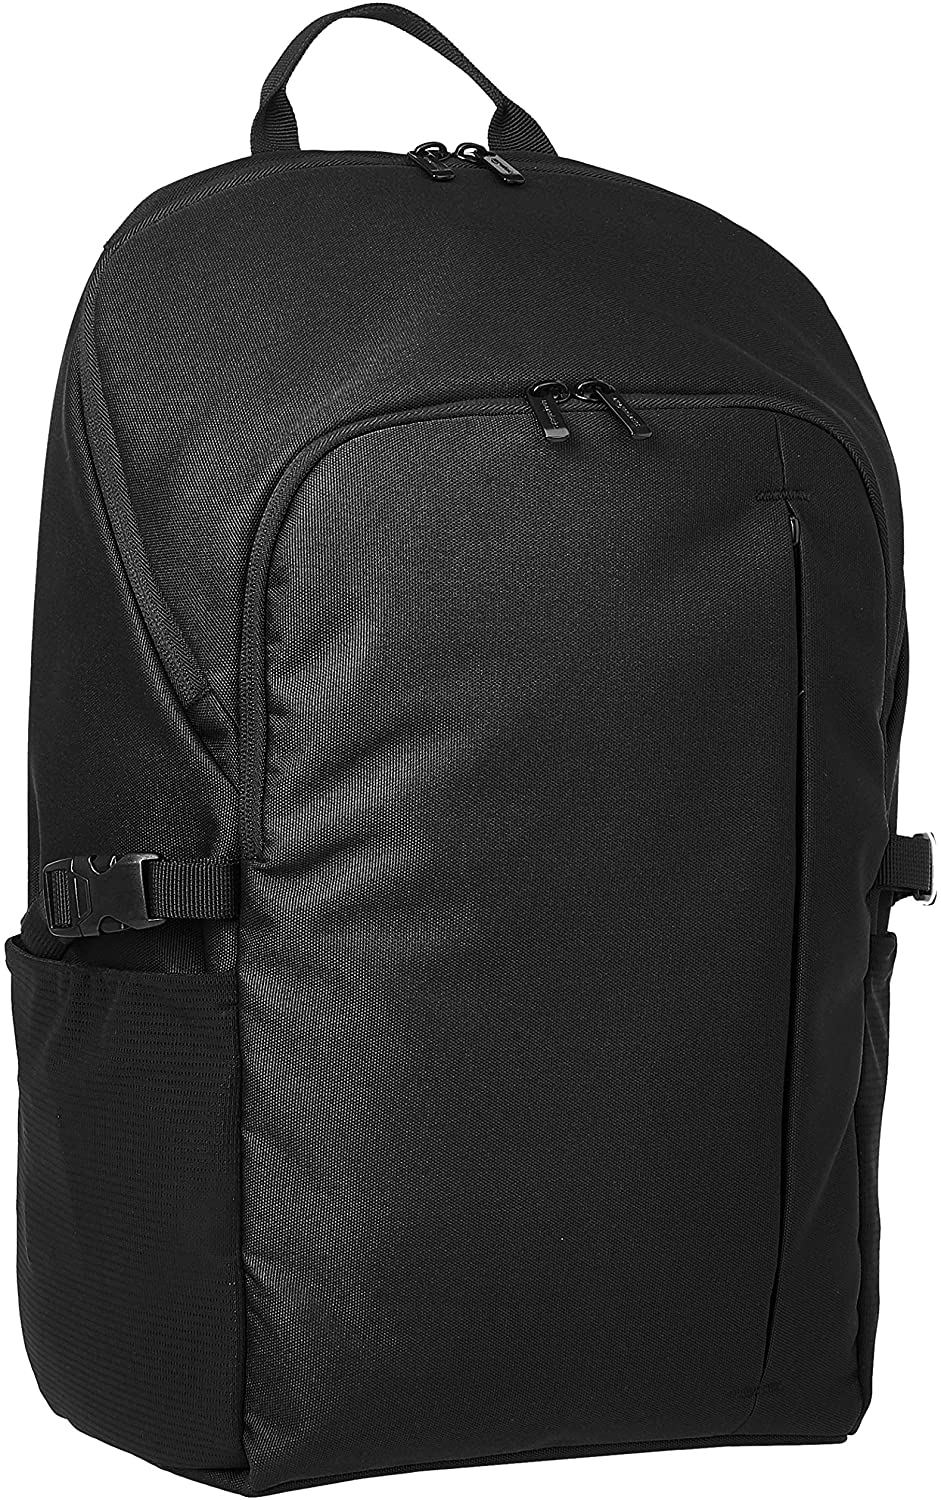 AmazonBasics SP-14215-43495-BK Campus Backpack for Laptops up to 15-Inches - Black